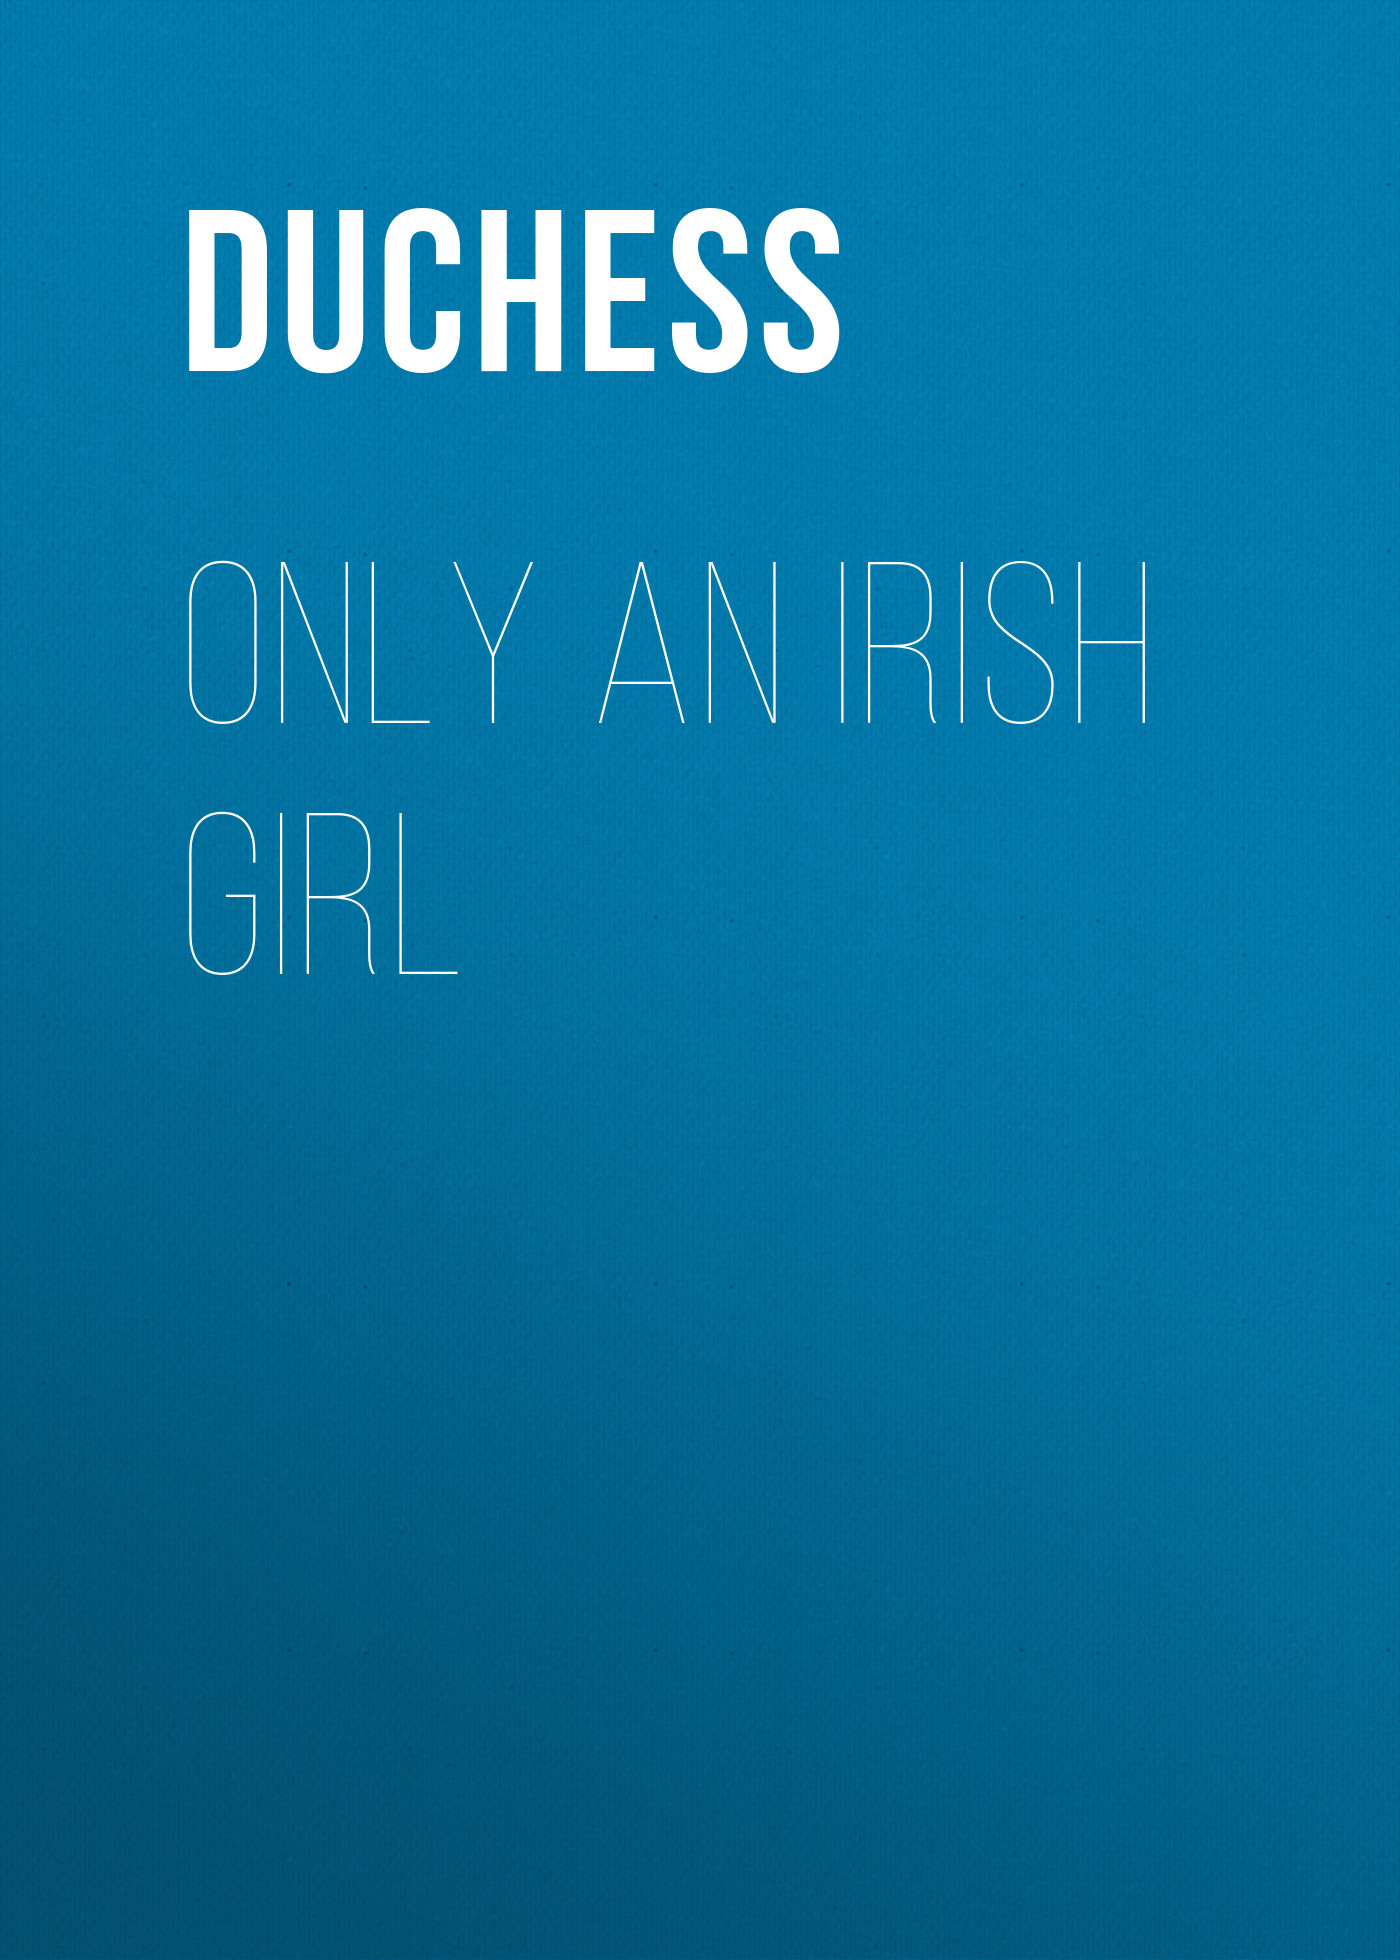 Duchess Only an Irish Girl